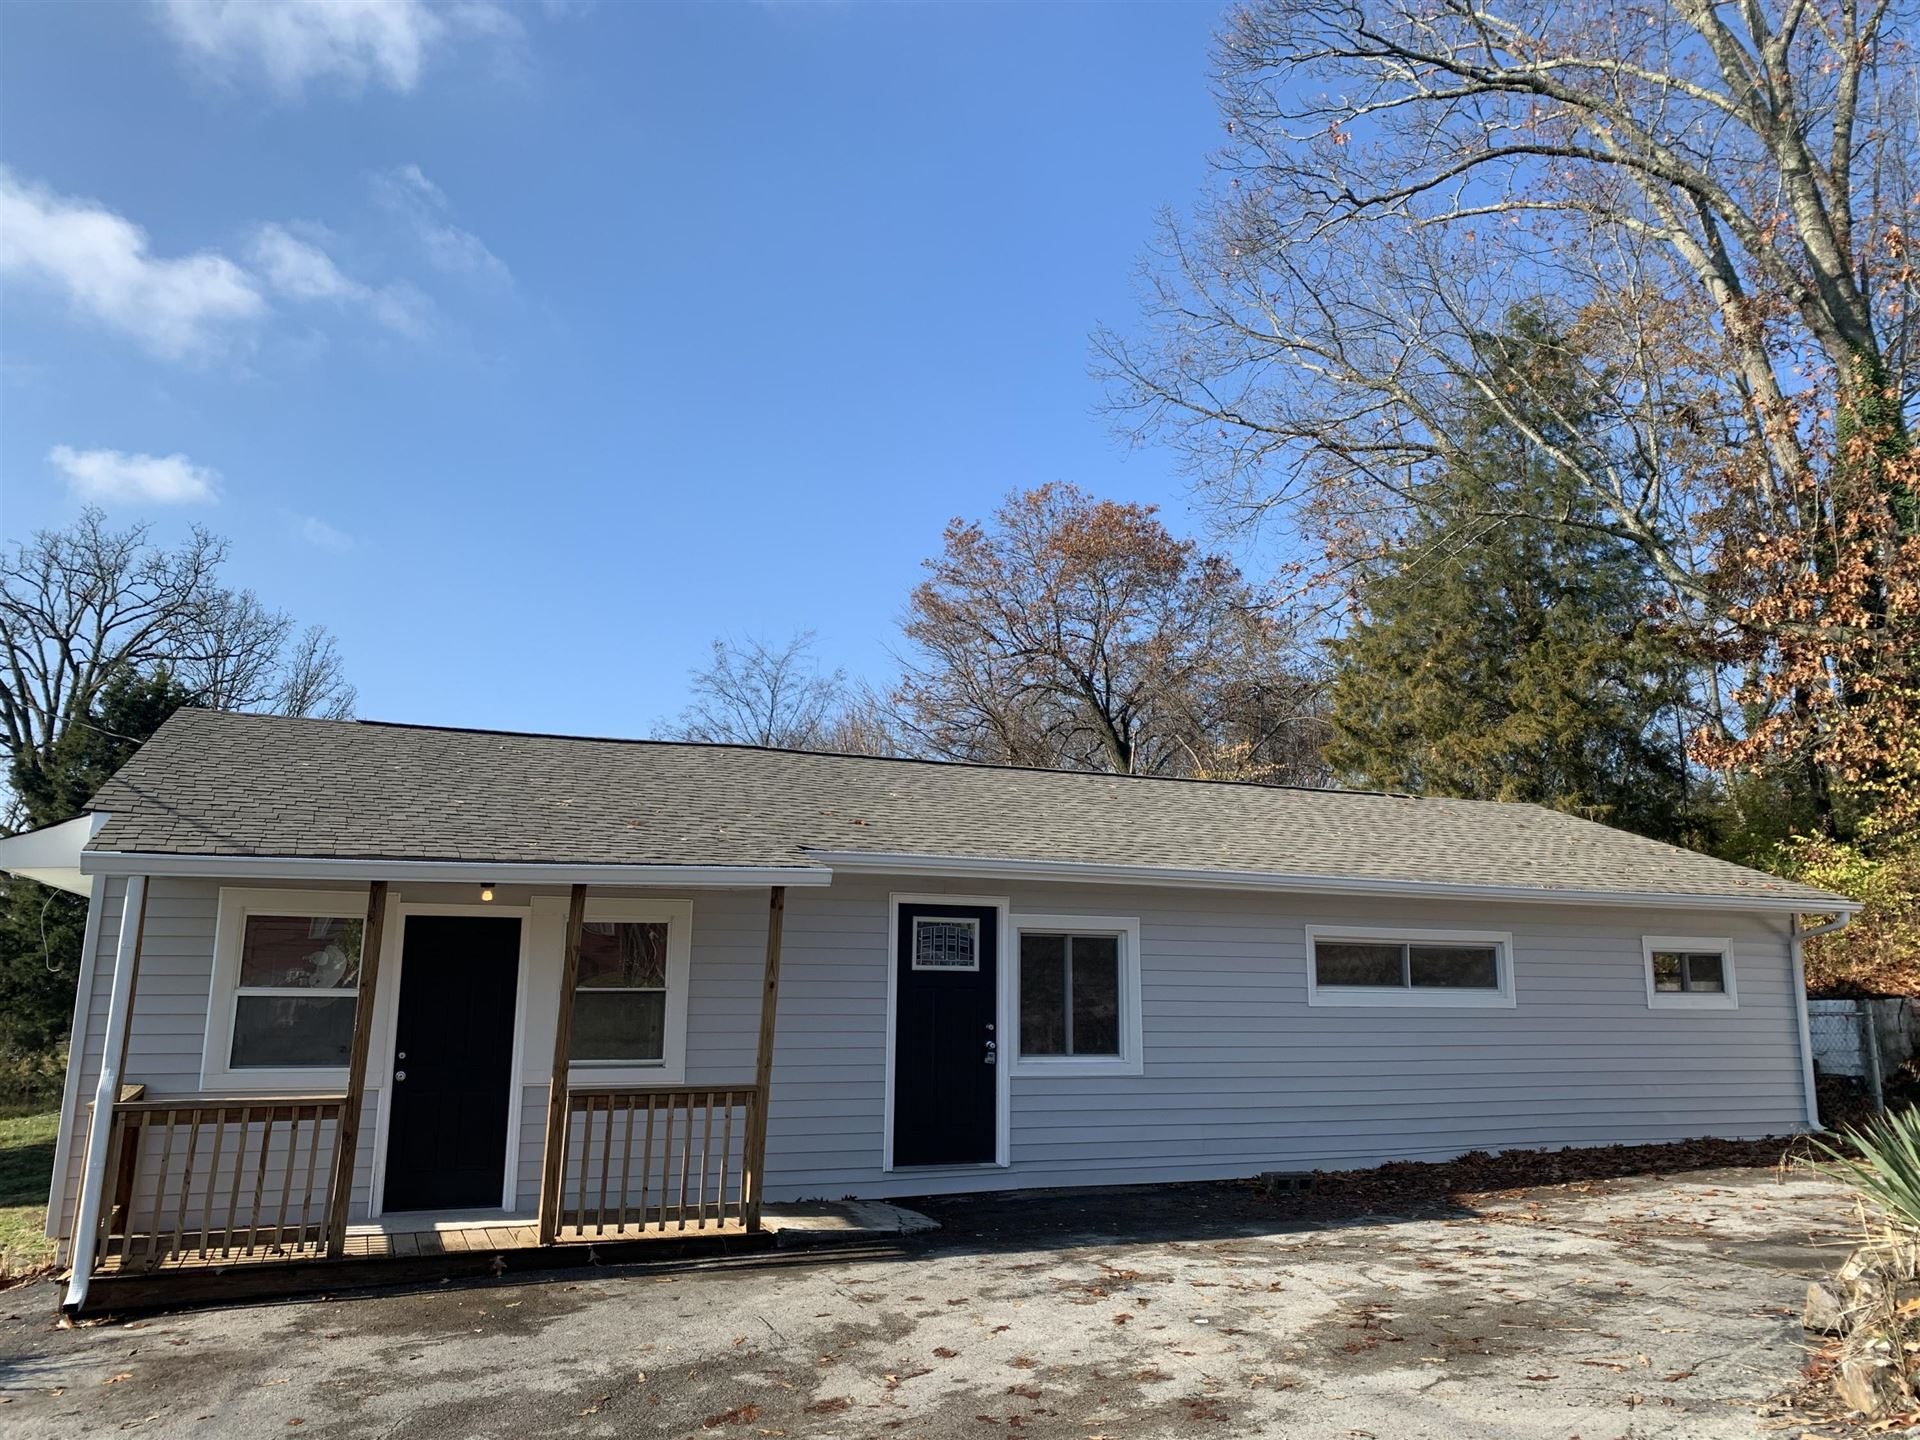 Photo of 2961 Buffat Mill Rd, Knoxville, TN 37917 (MLS # 1137564)